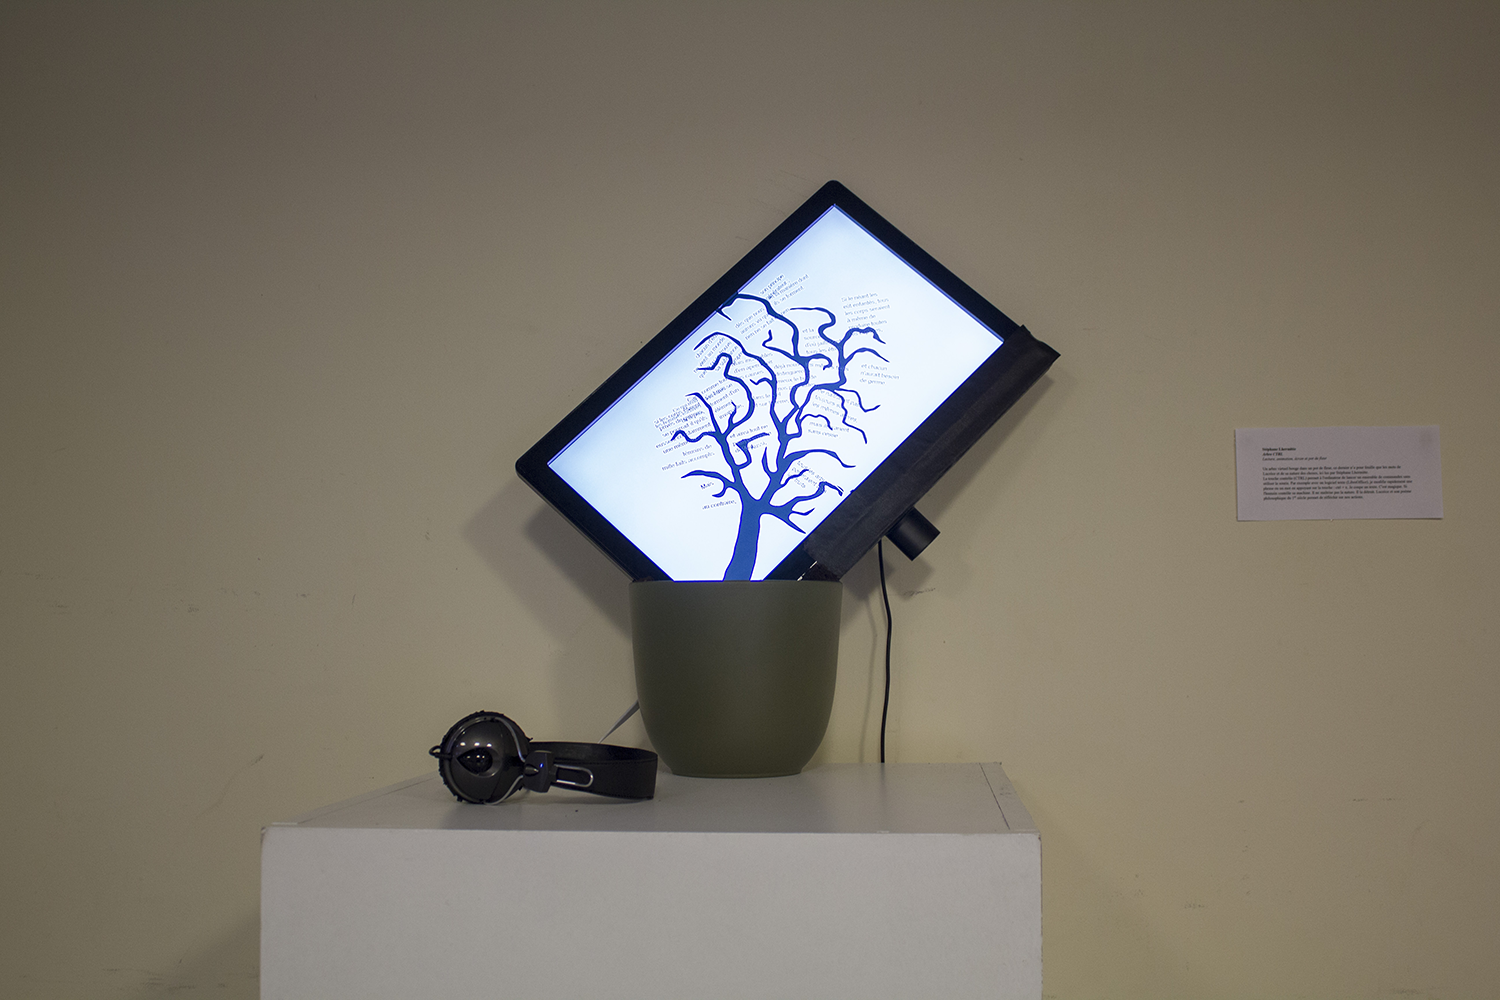 A screen is inside a flower pot and show a tree of words